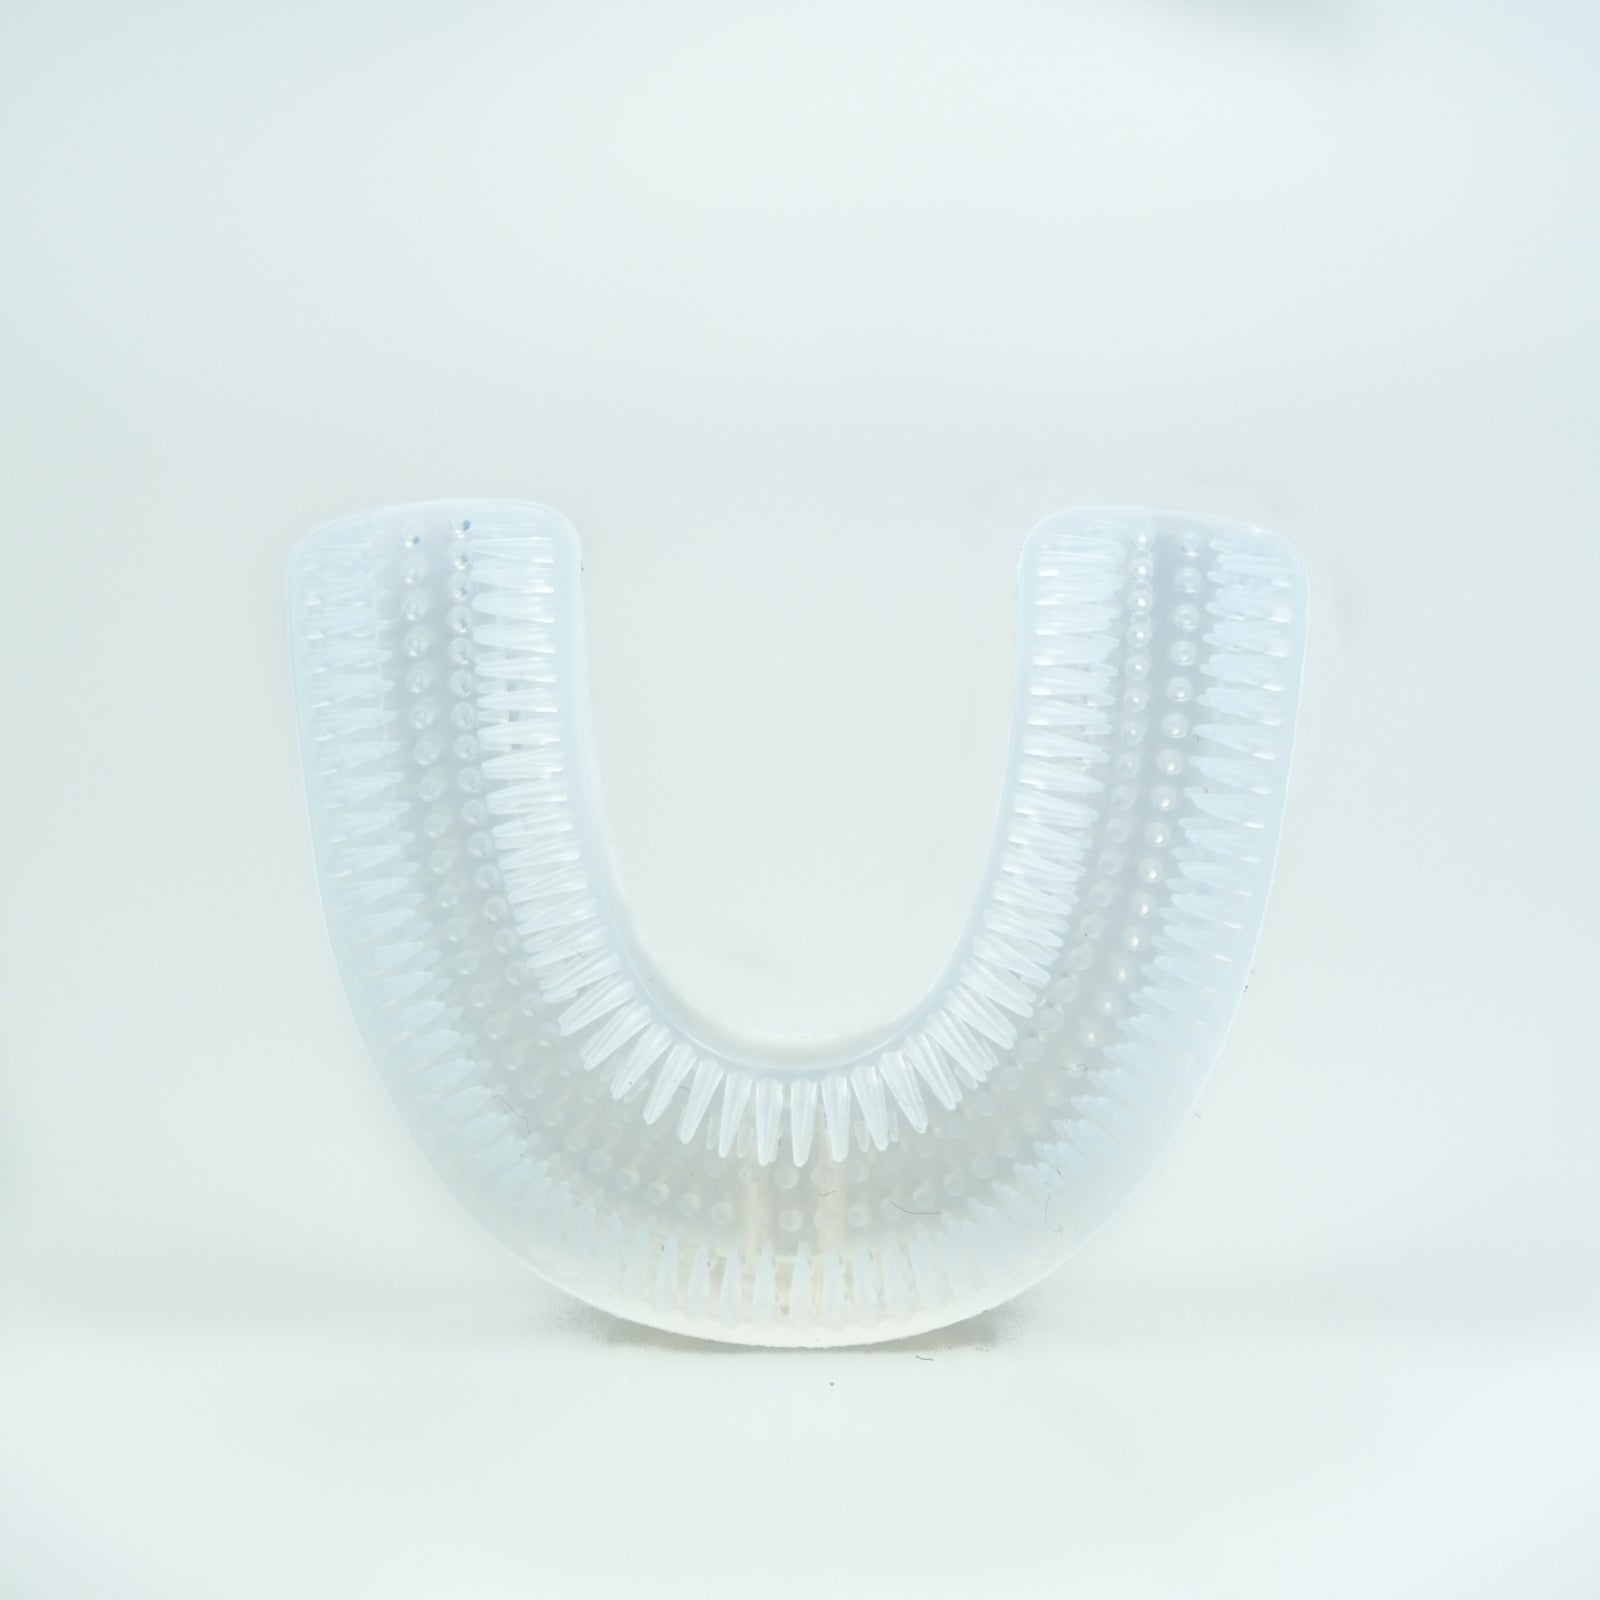 AutoBrush mouthpiece on white background, for AutoBrush